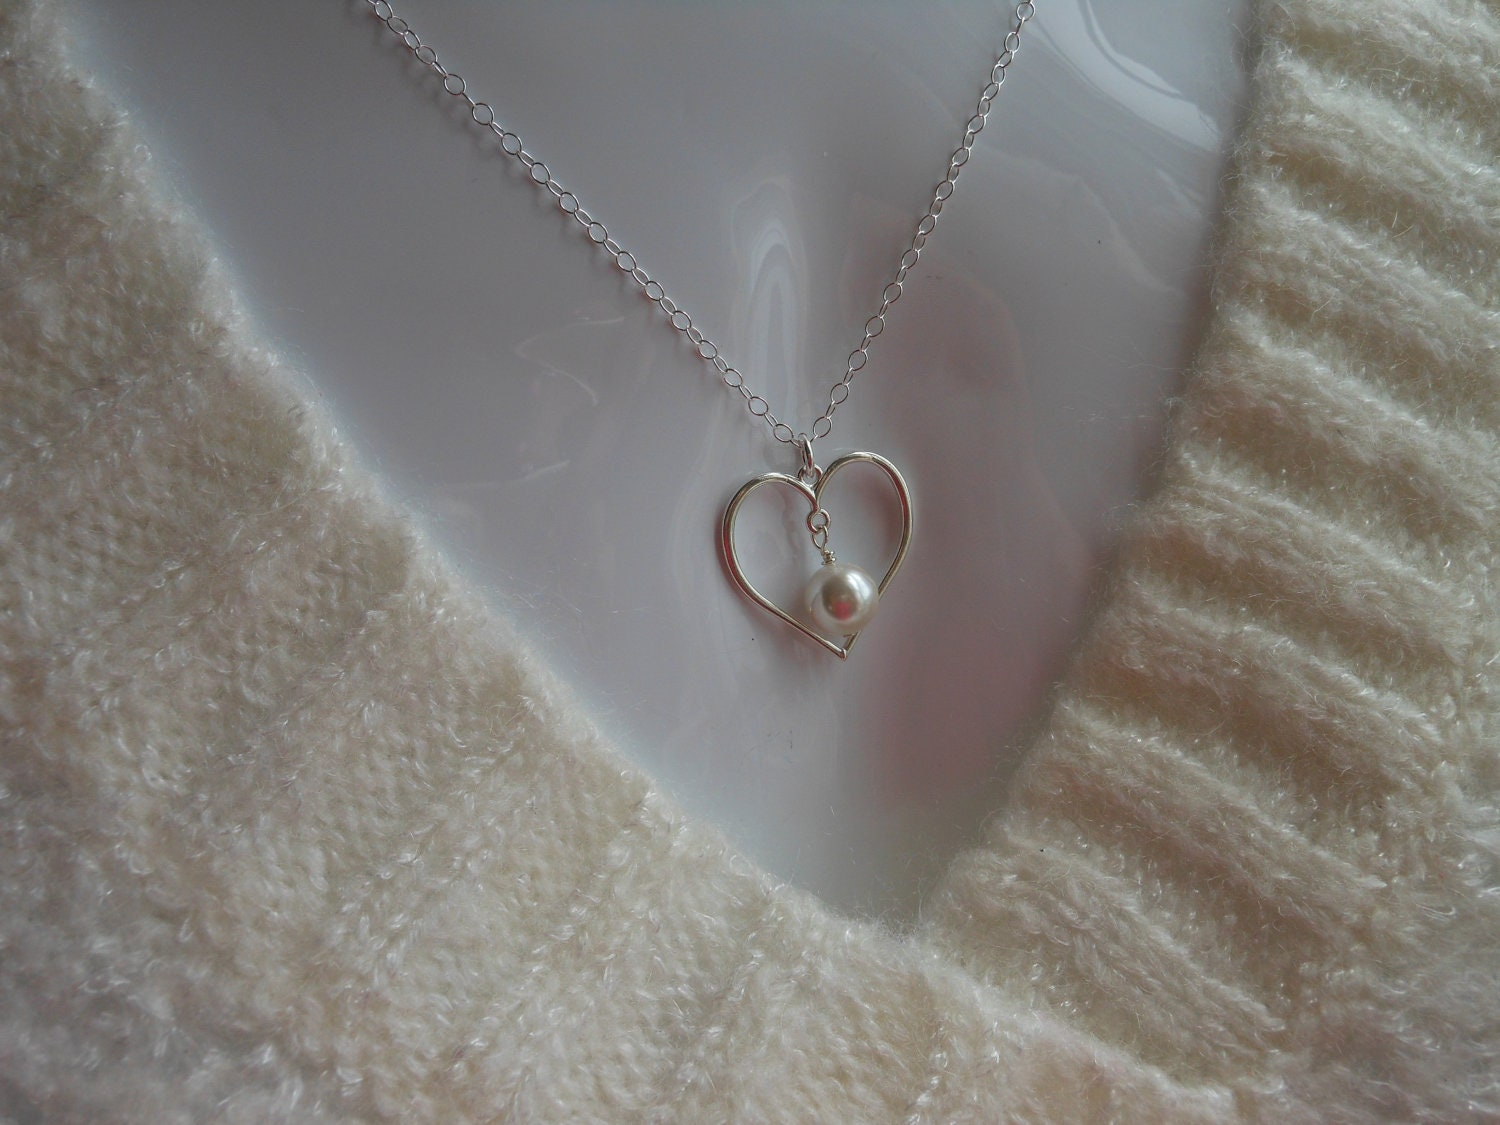 Mothers Love Necklace, Sterling Silver Heart Necklace, Heart and Pearl Necklace, Mother of the Bride, Mothers Necklace